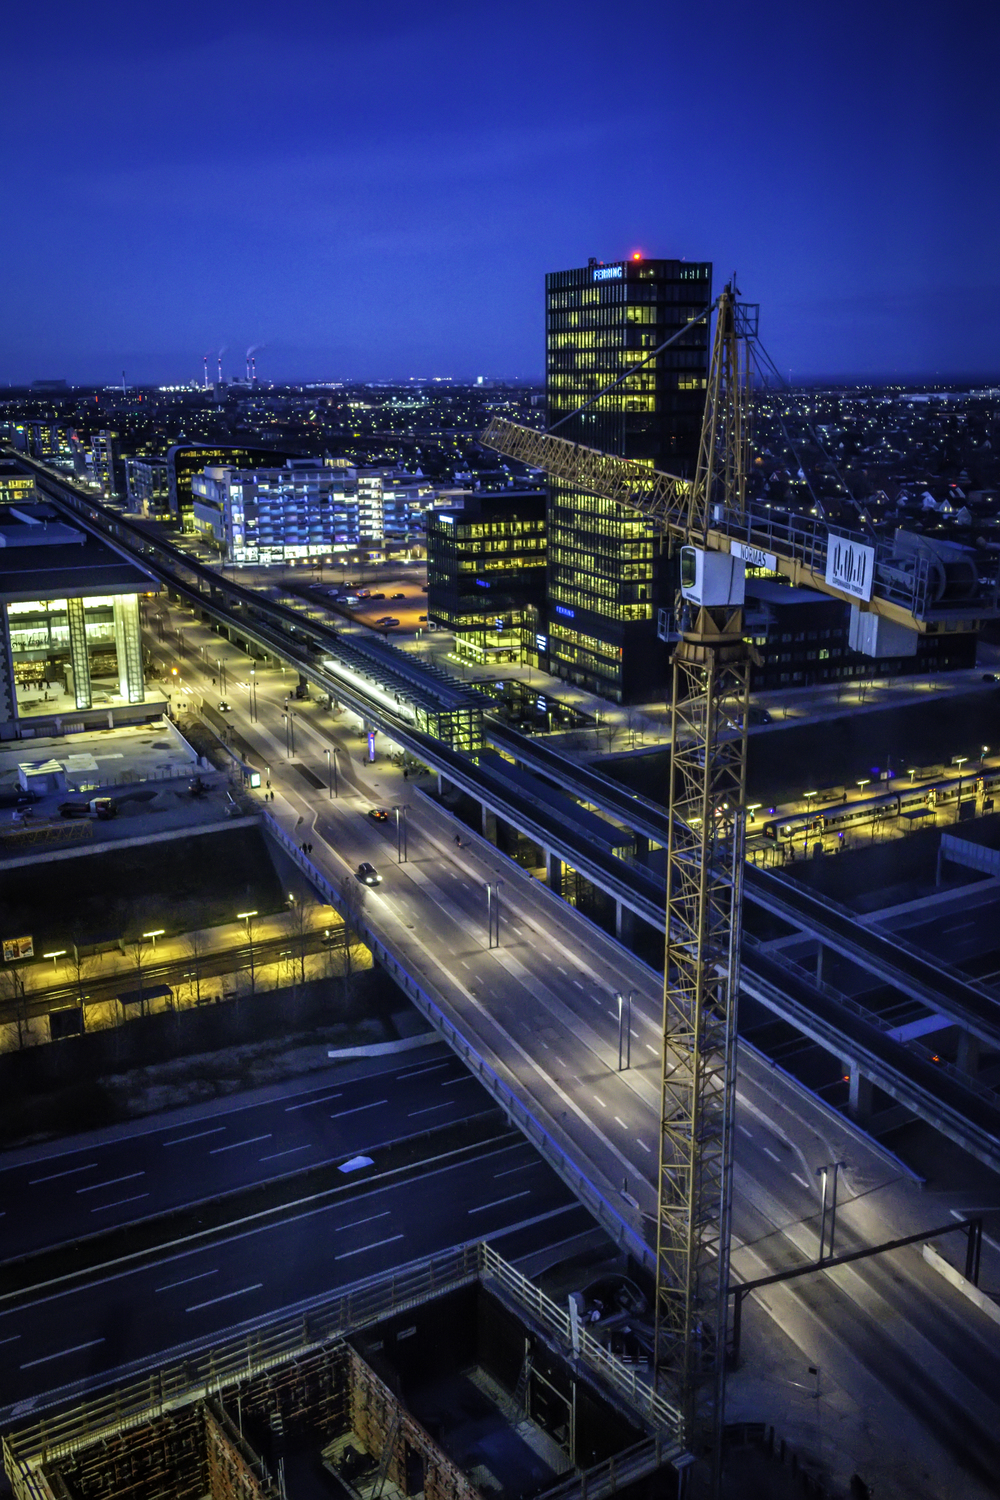 The Night of Ørestad